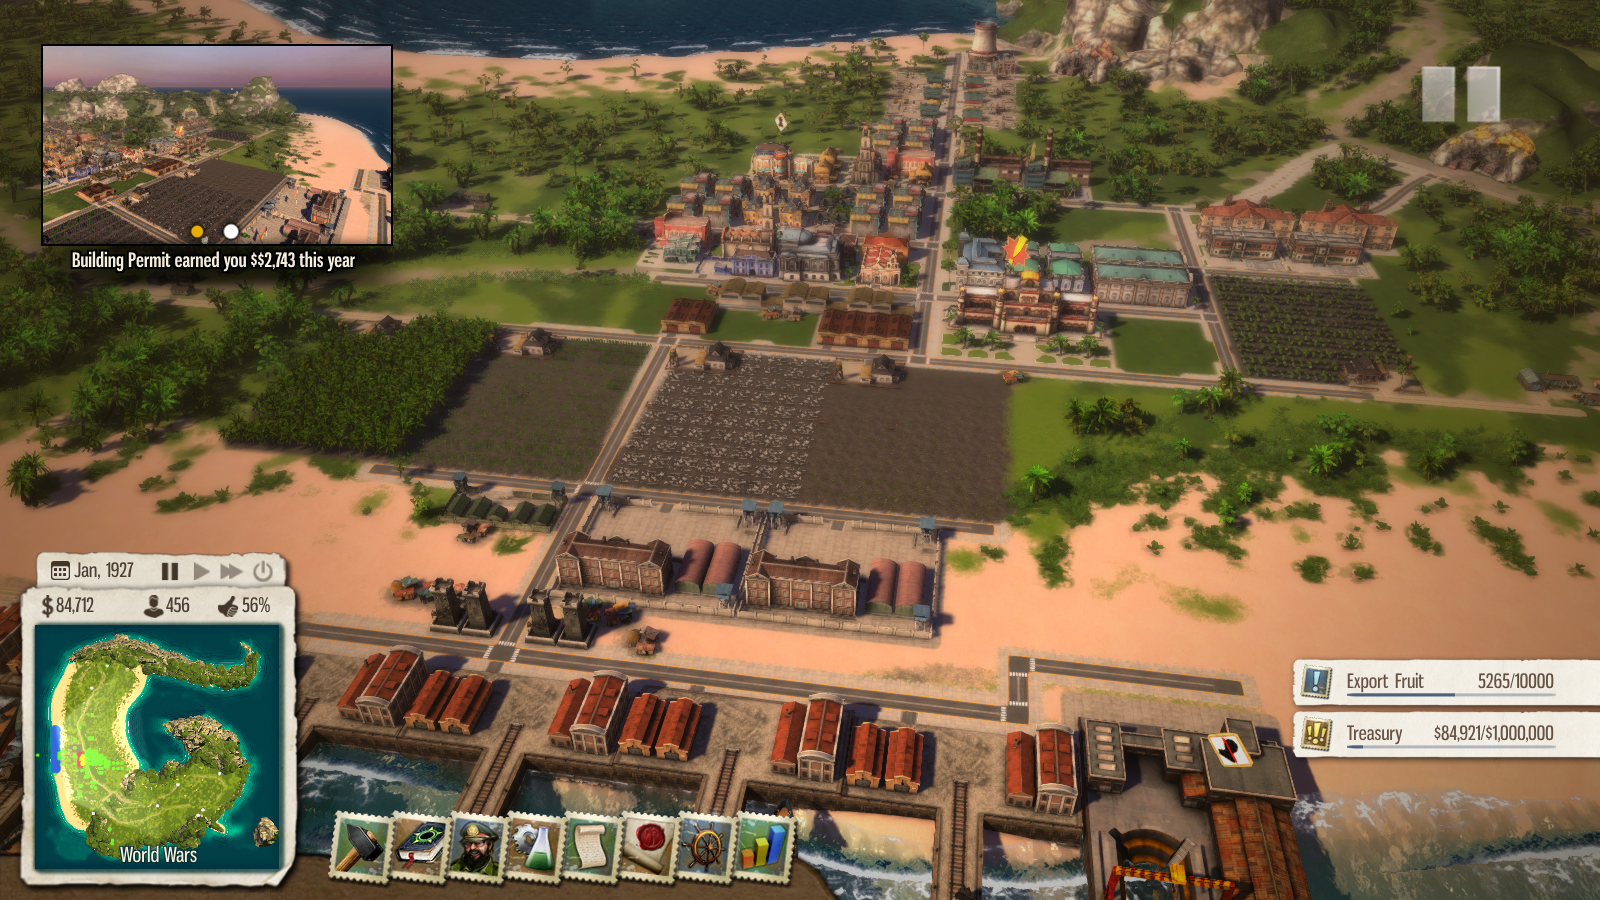 tropico5-mission-iverview-mission12-get-